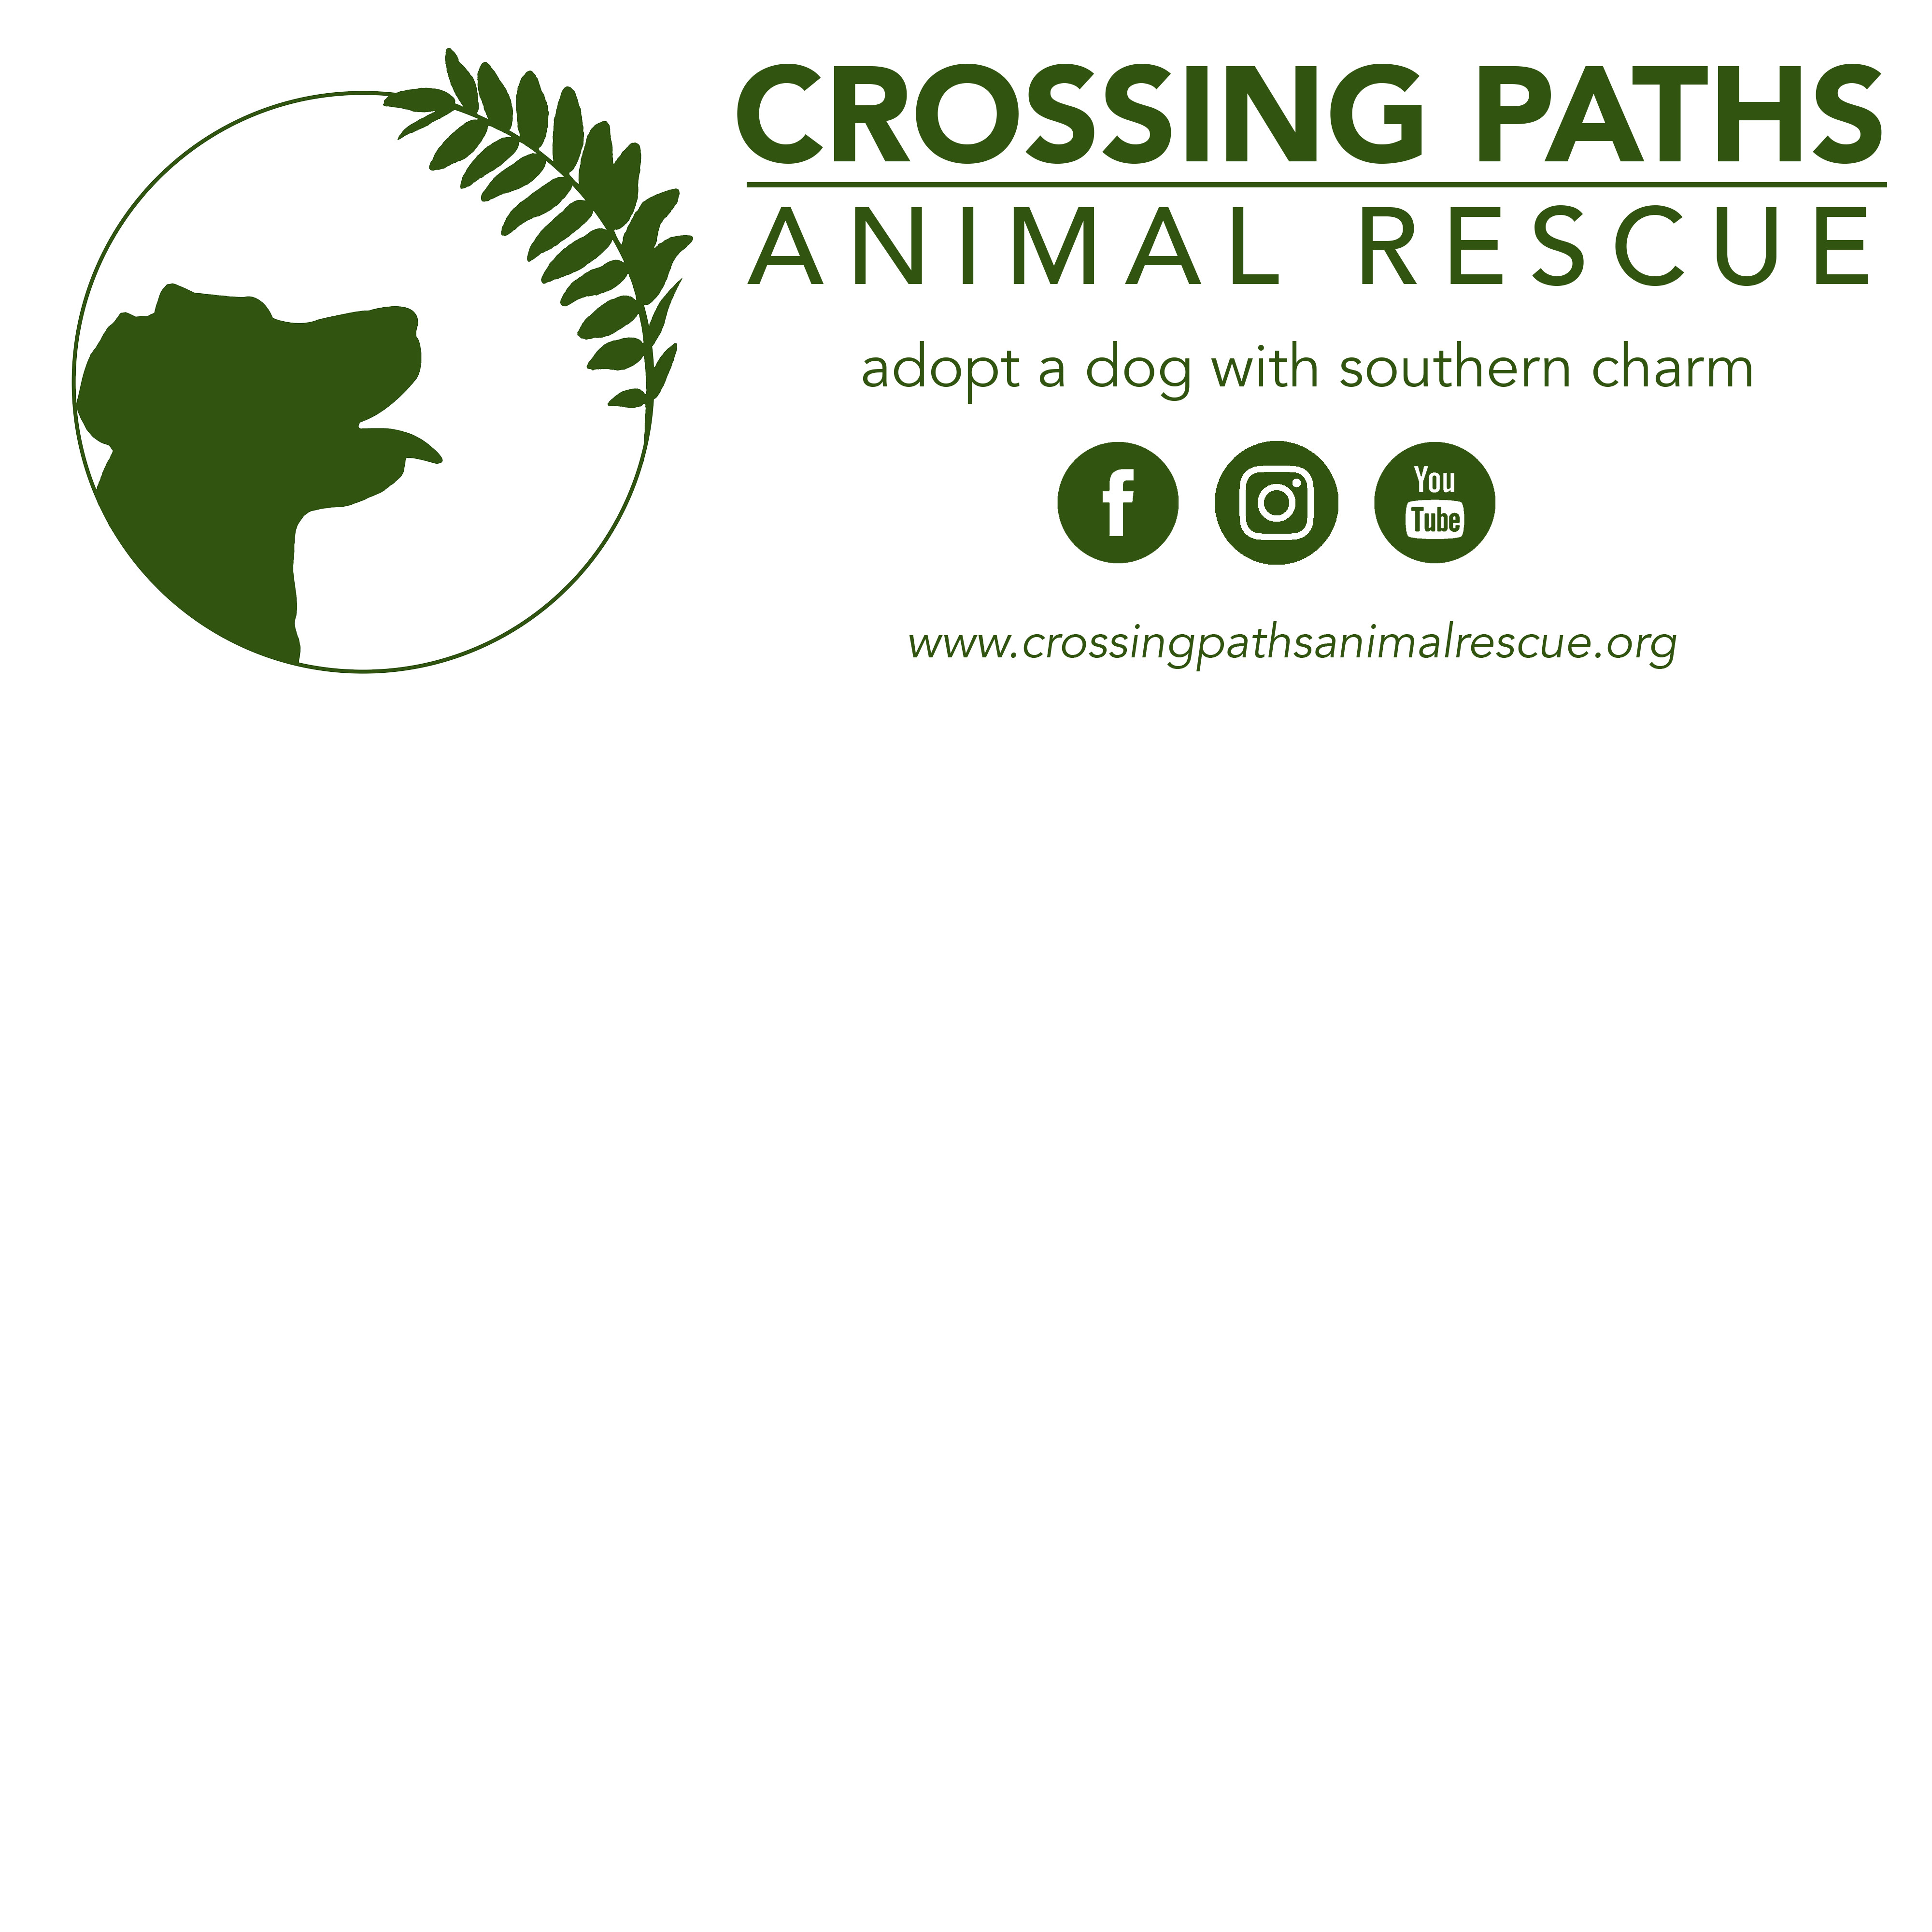 Crossing Paths Animal Rescue